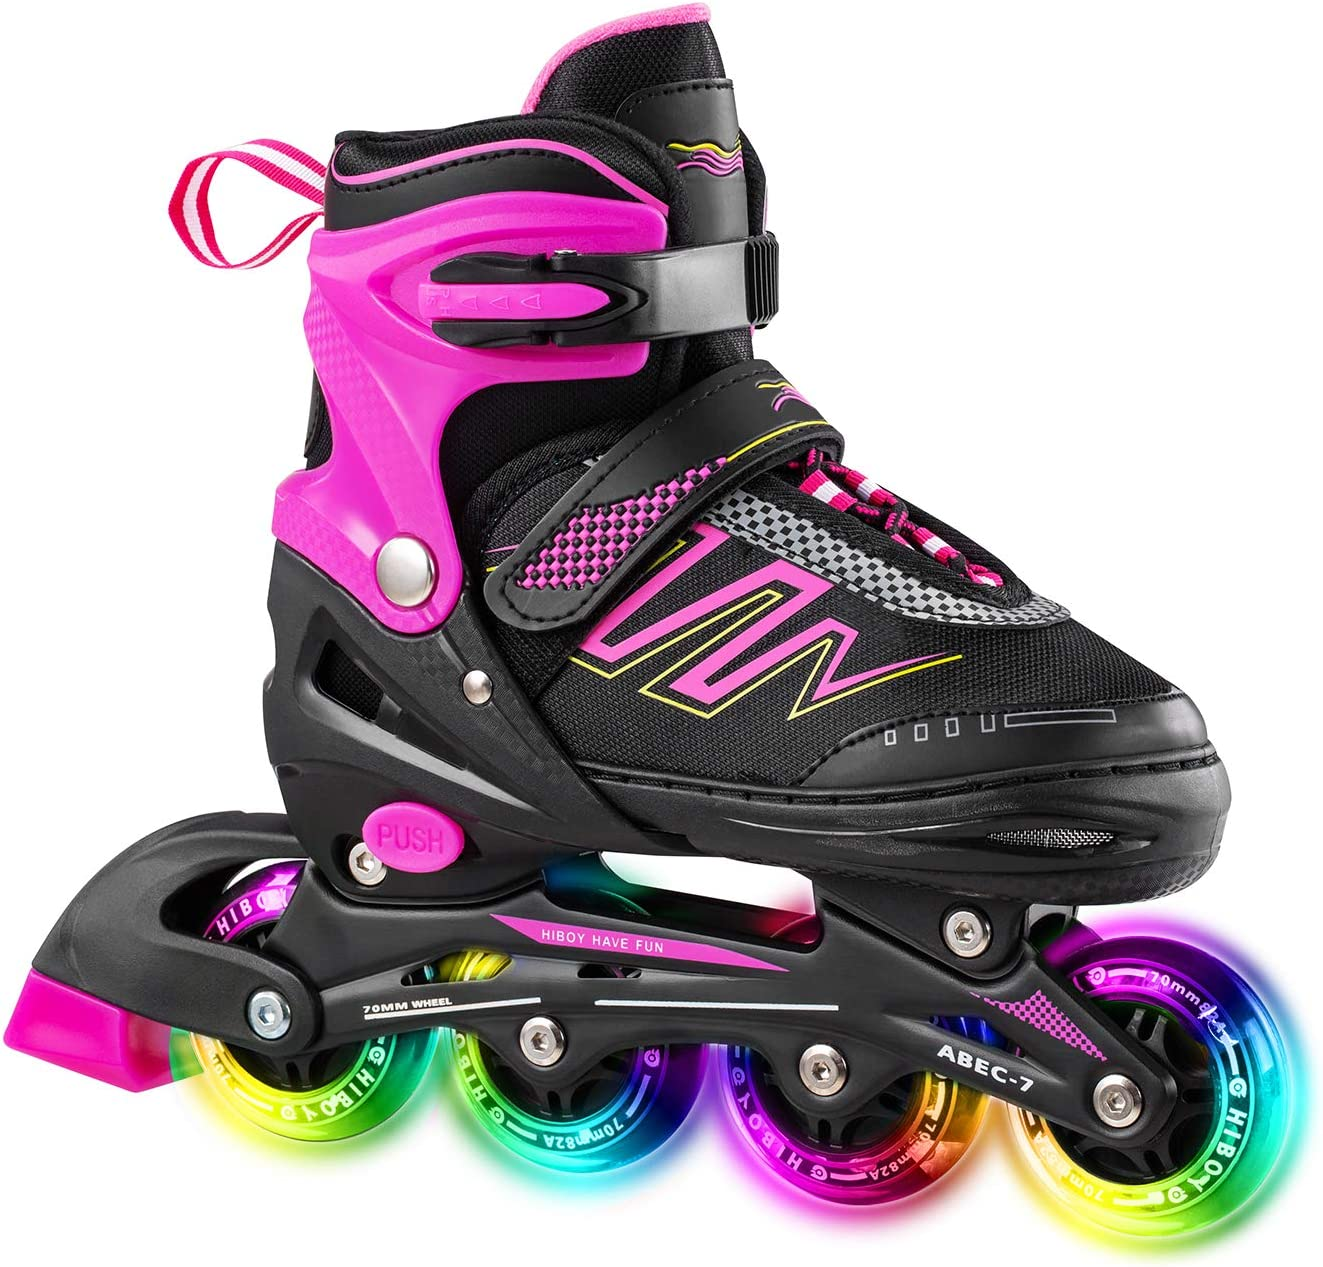 Hiboy Adjustable Inline Skates with All Light up Wheels, Outdoor & Indoor Illuminating Roller Skates for Boys, Girls, Beginners